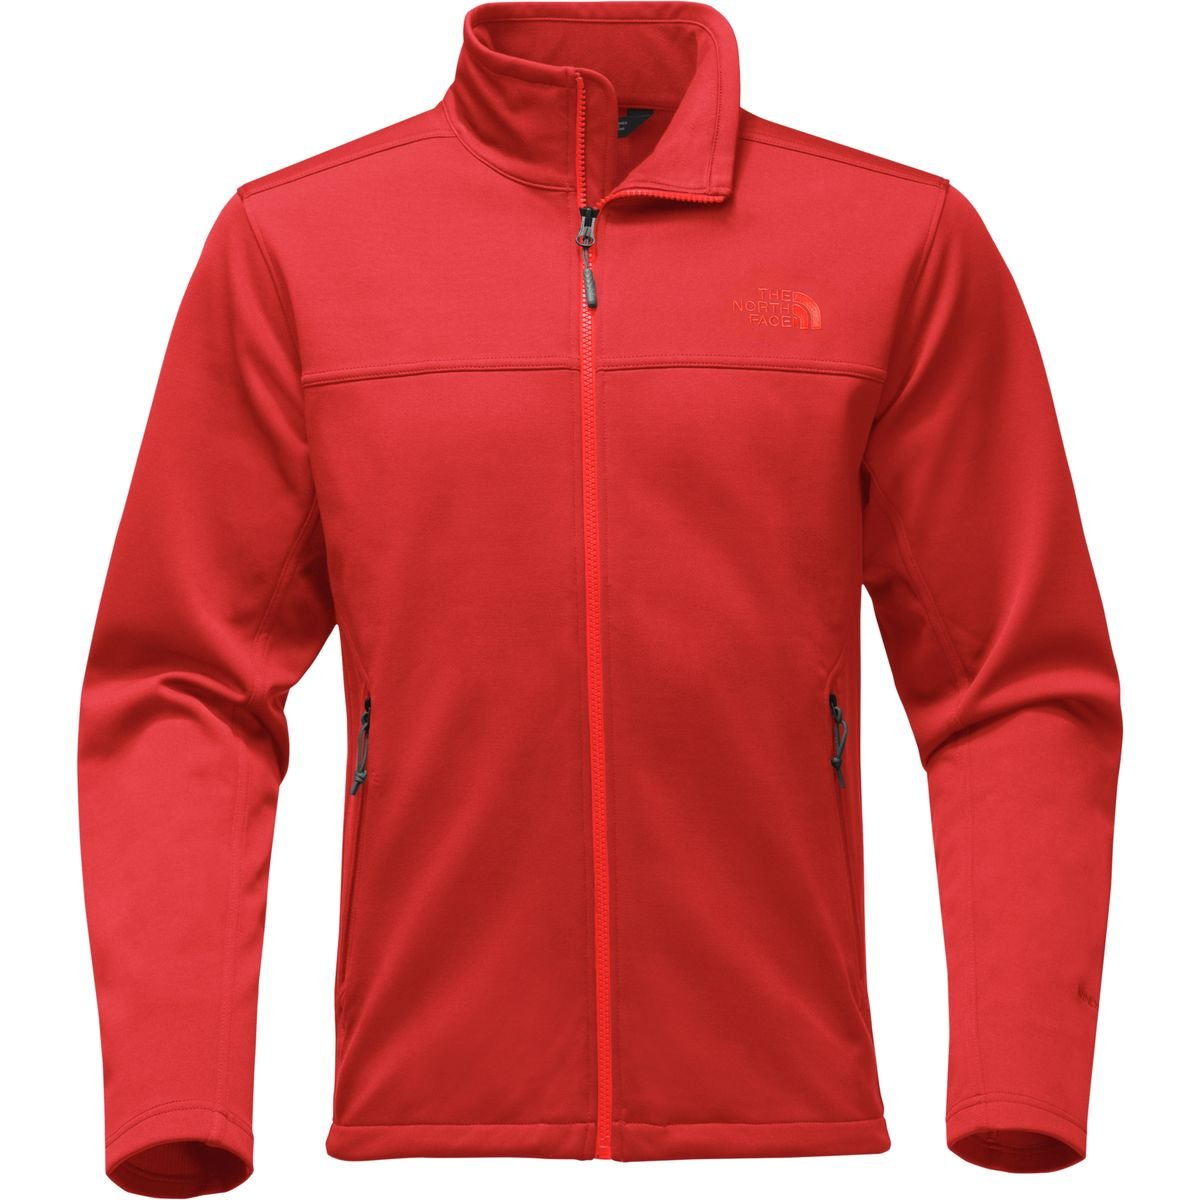 The North Face Men's Apex Canyonwall Jacket - Cardinal Red/Cardinal Red - XL (Past Season)